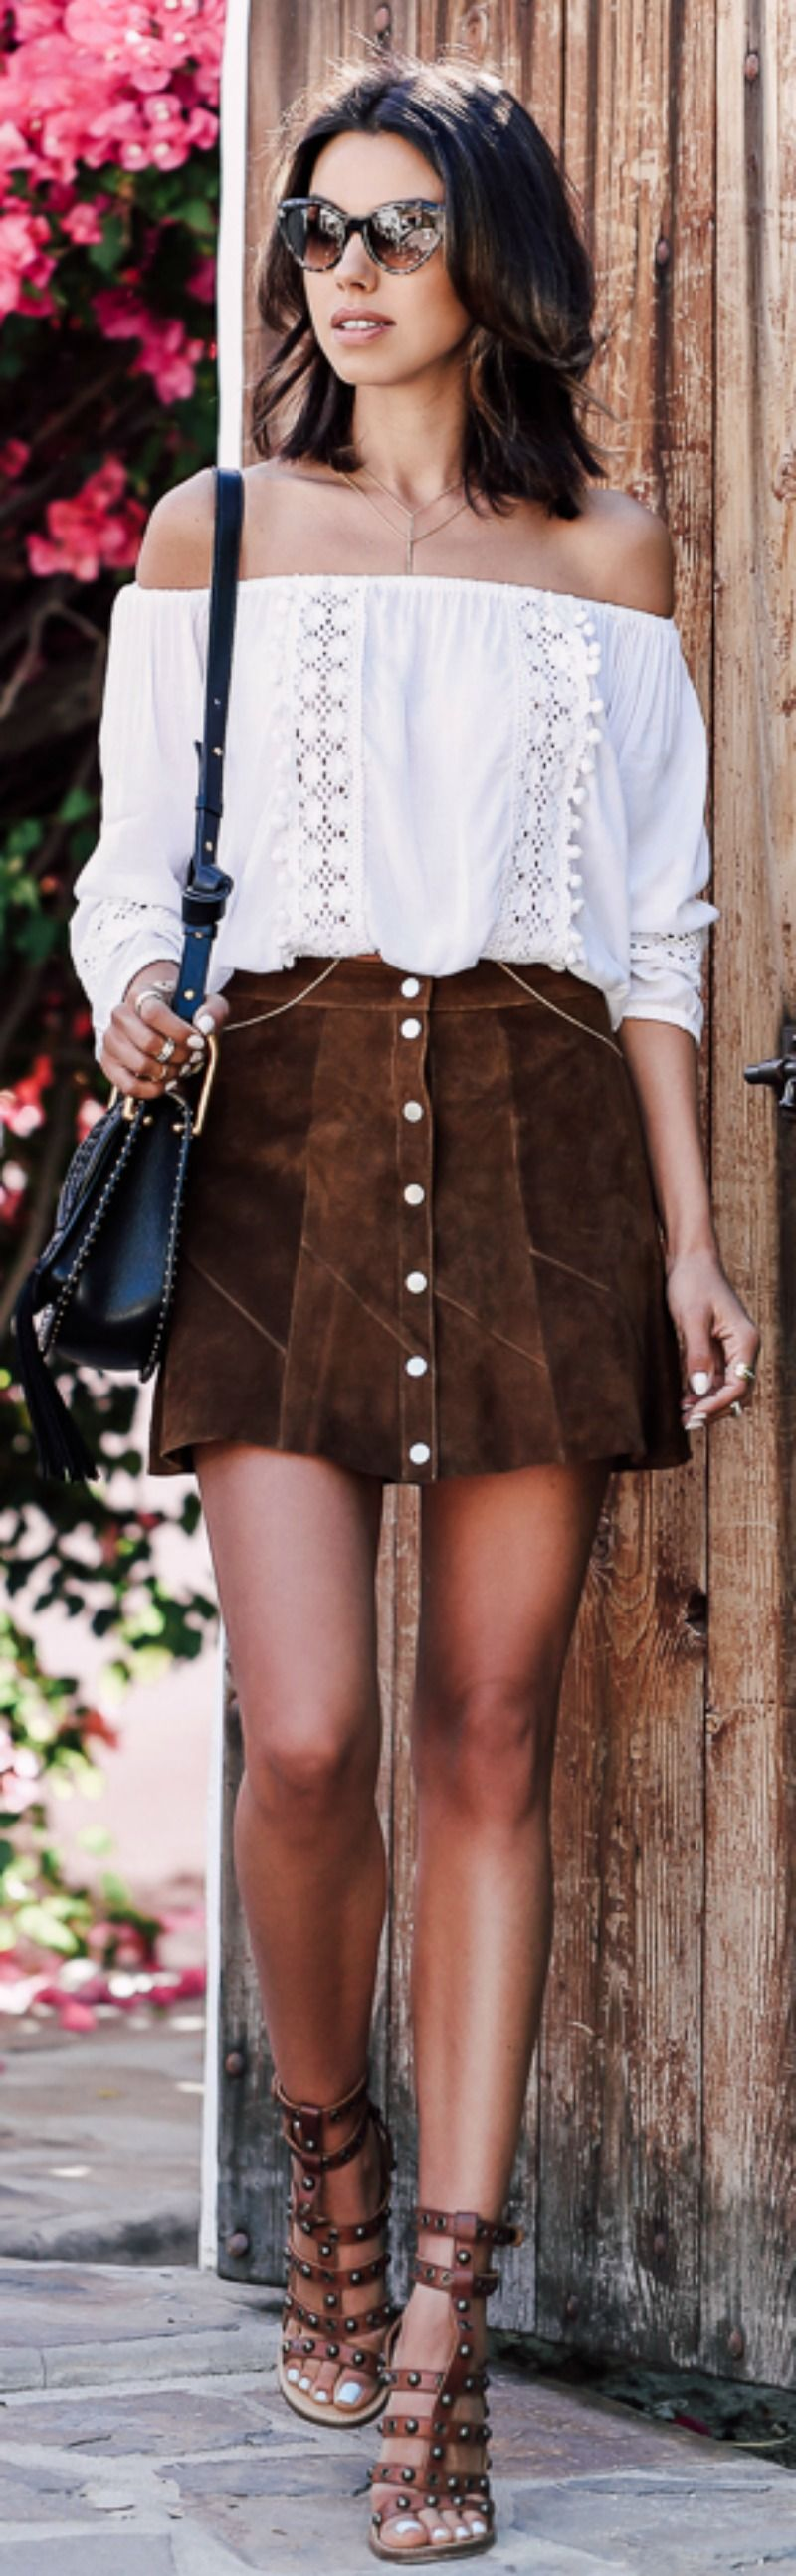 The Boho Outfits File What Is Bohemian Style And How Do You Style ...